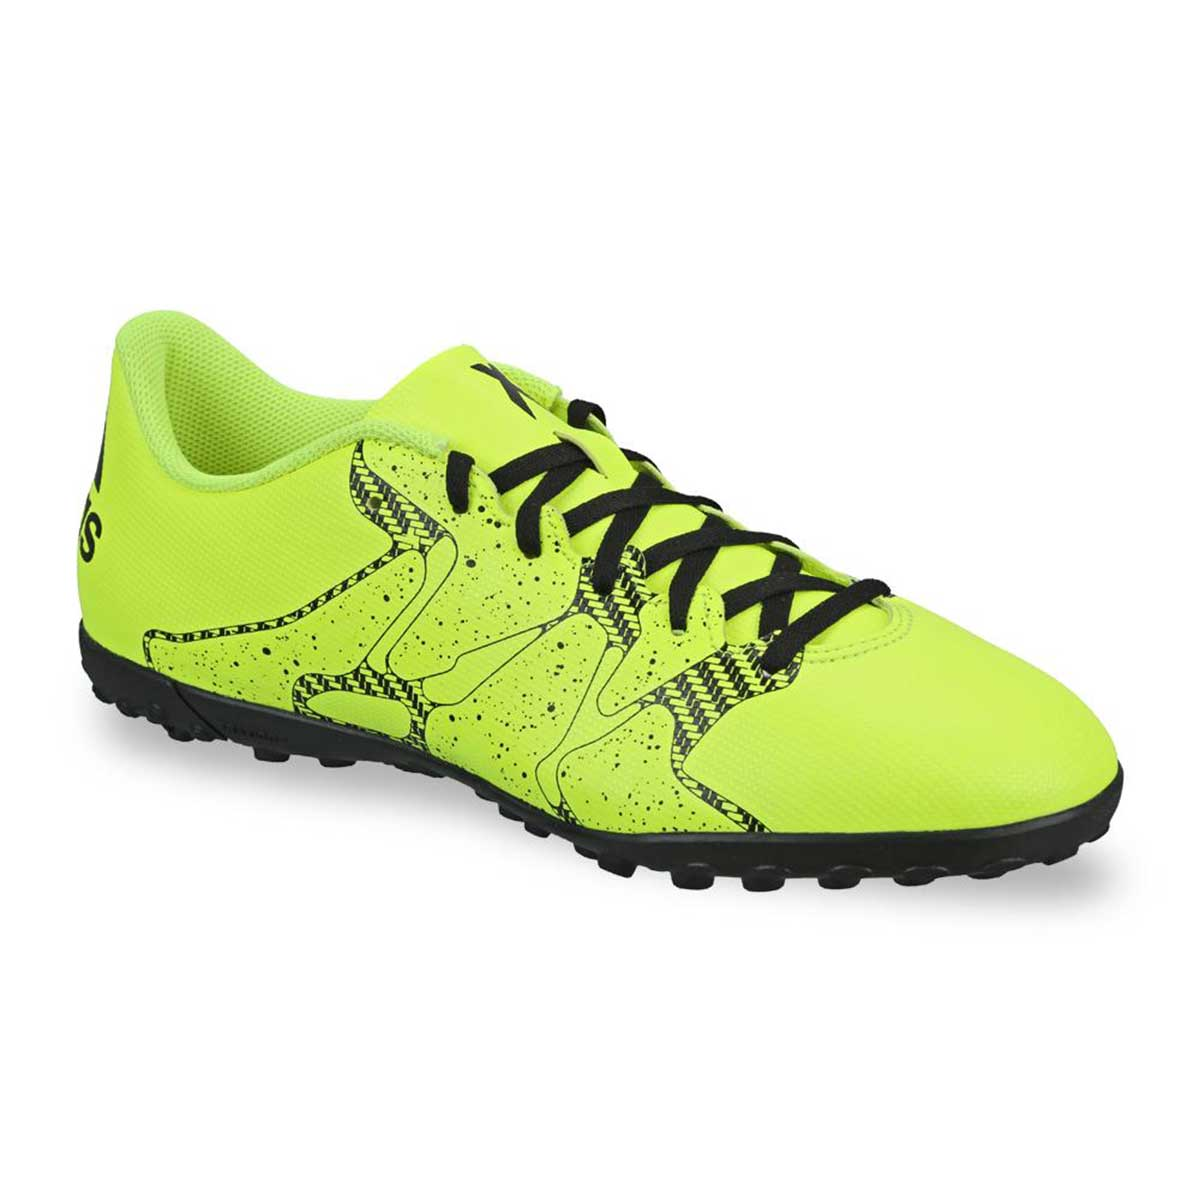 X 15.4 Fxg- Yellow football shoes